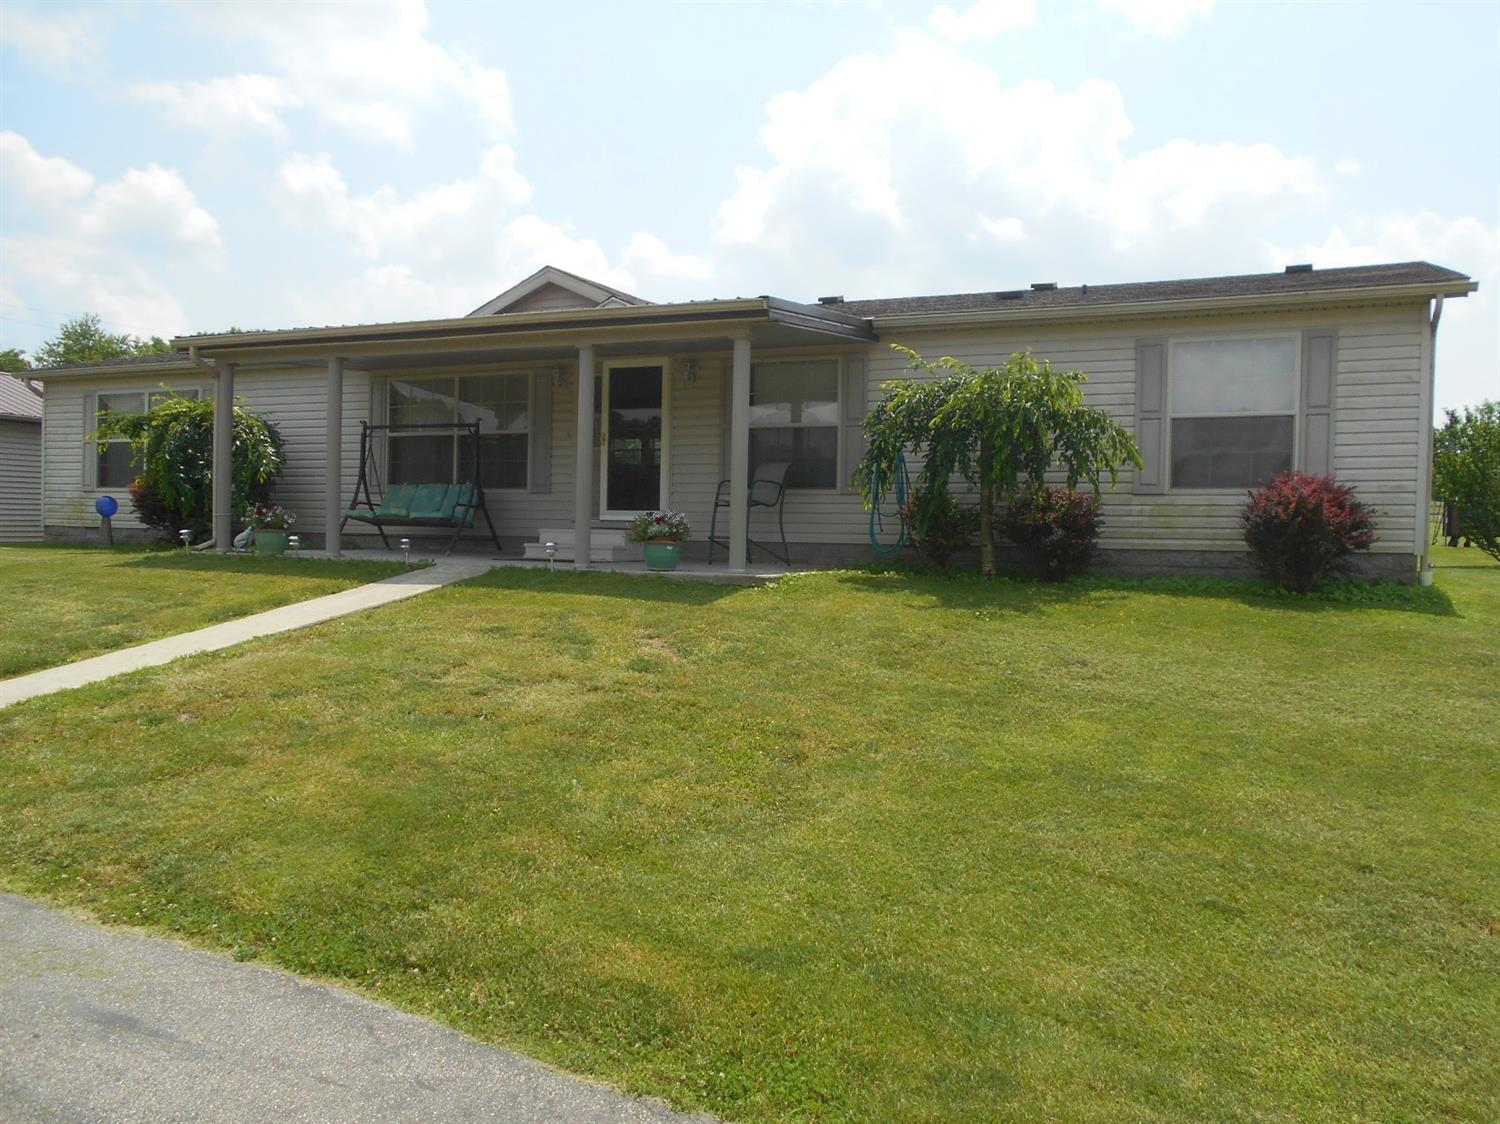 2201 E State Road 350 Osgood, IN